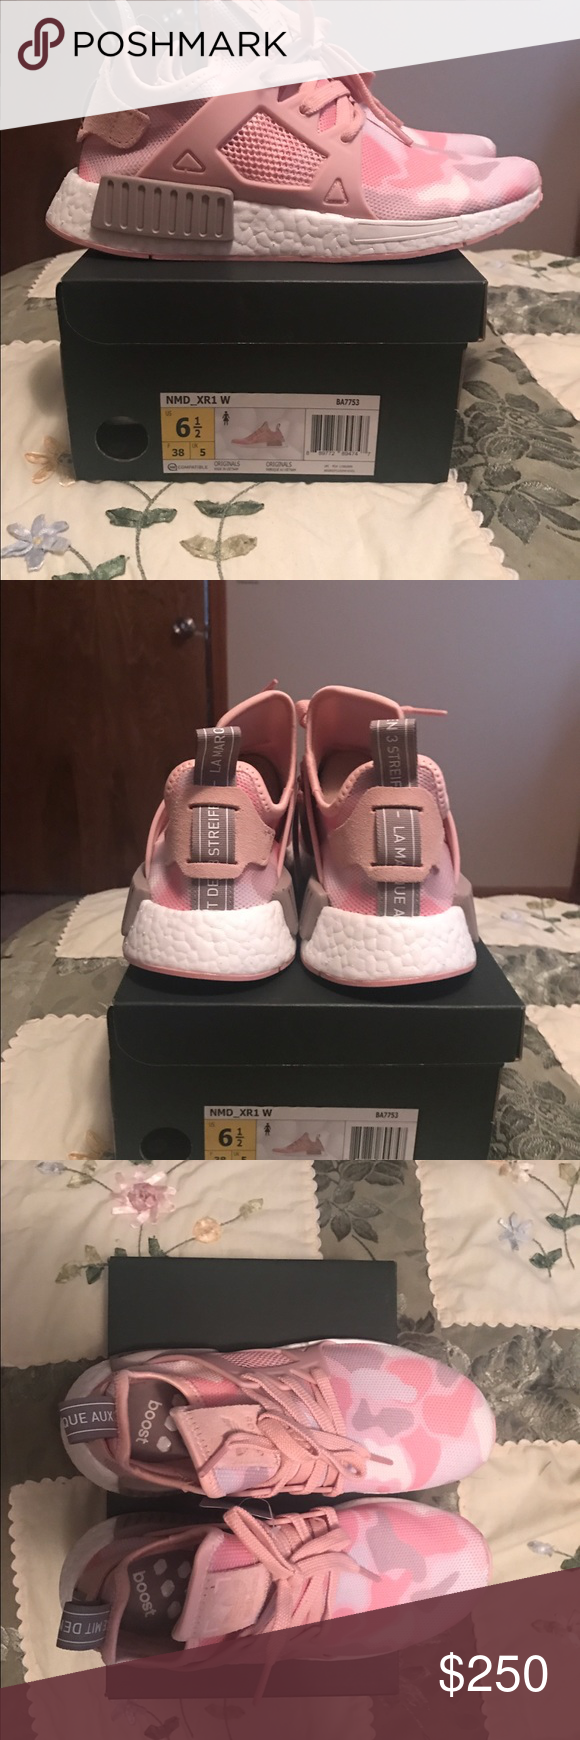 d5c0a2d899afe Adidas NMD XR1 - Pink Duck Camo These shoes are Brand New In The Box ...